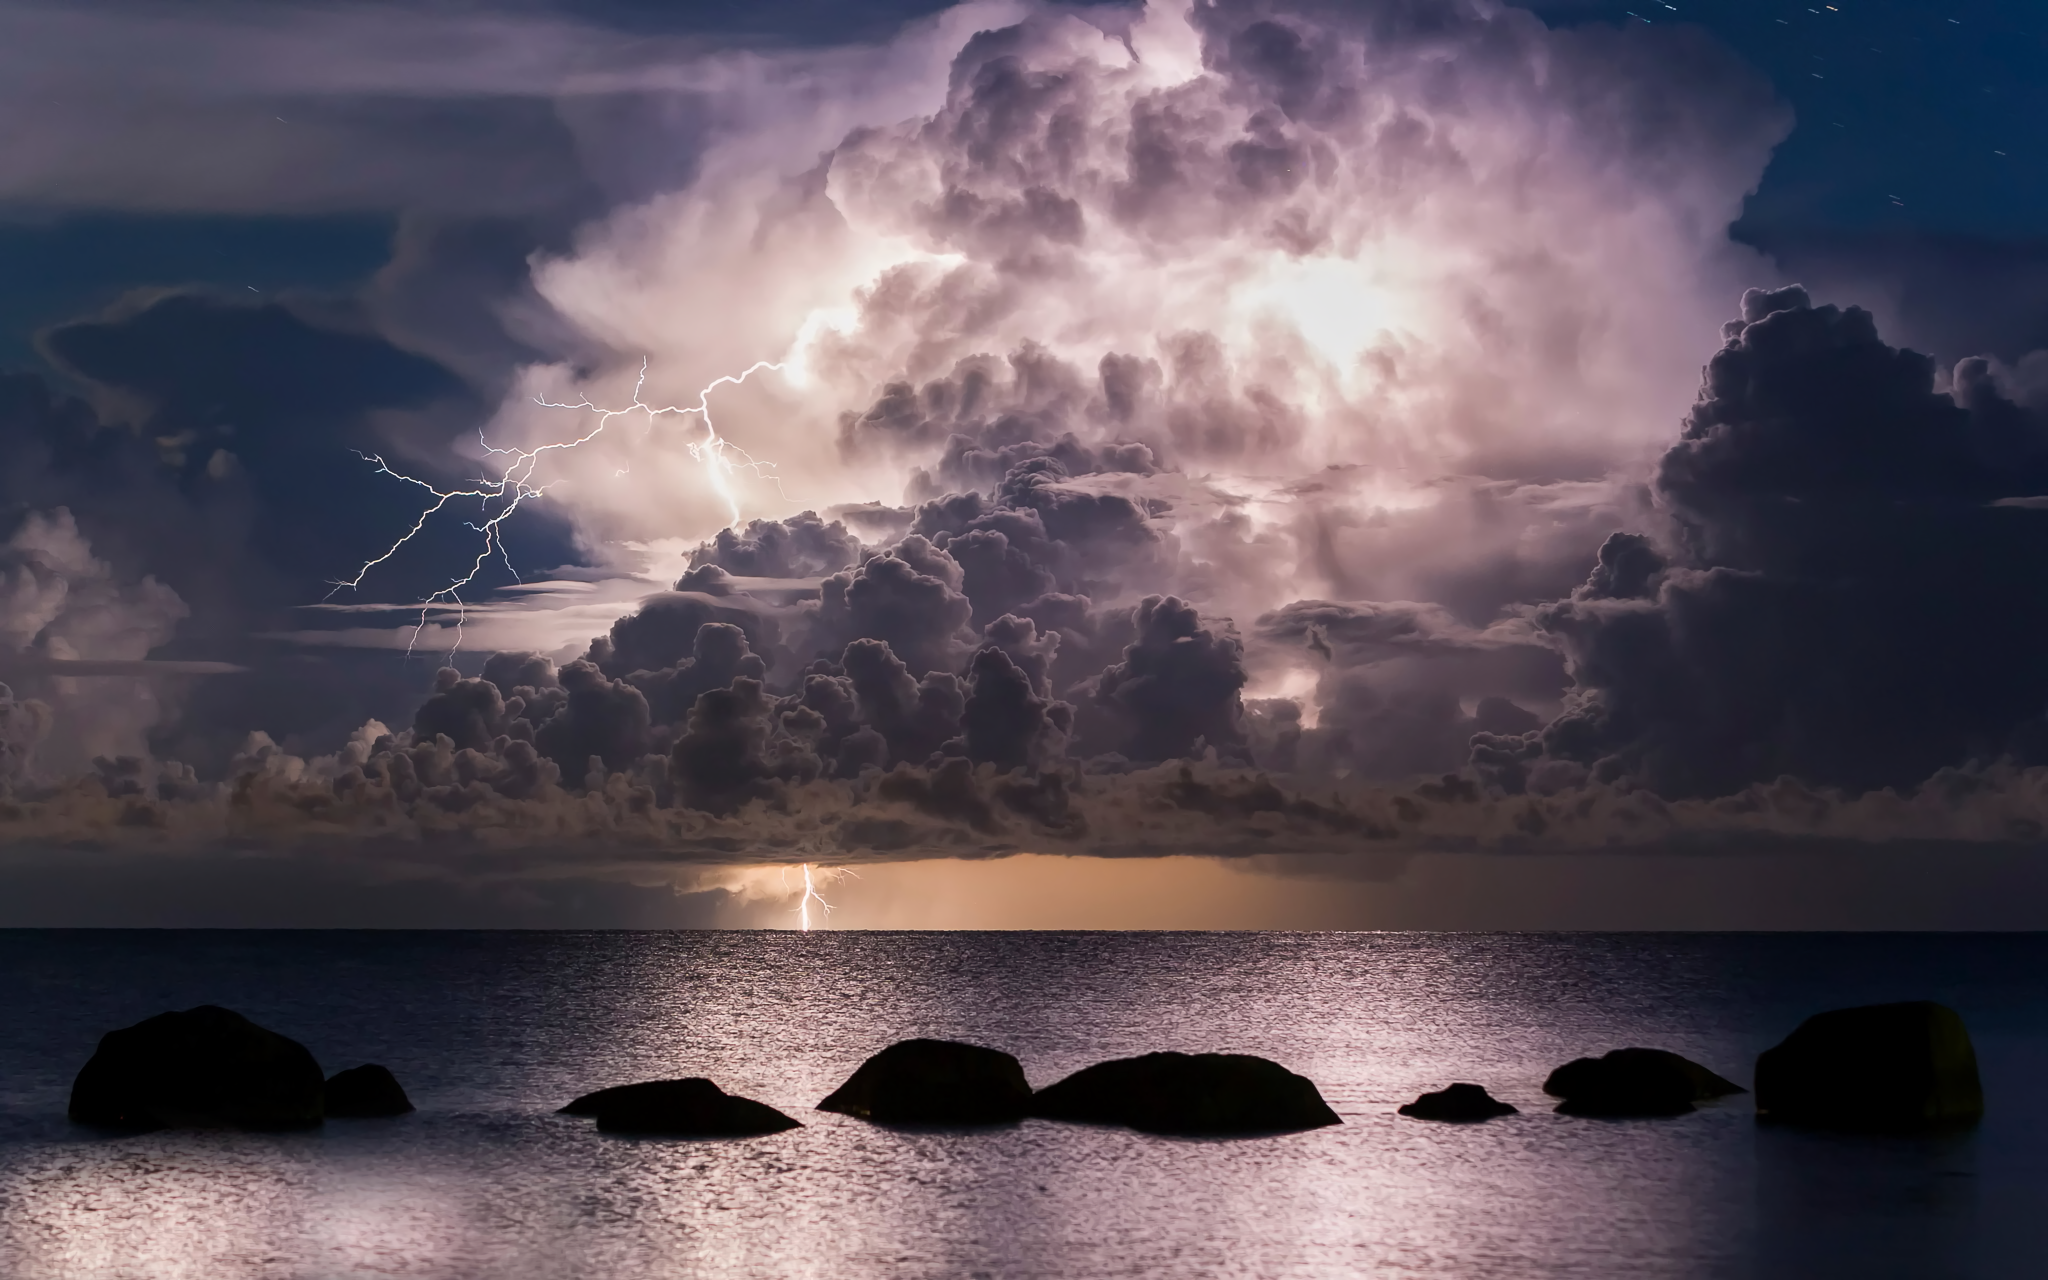 storm clouds over ocean hd nature 4k wallpapers images